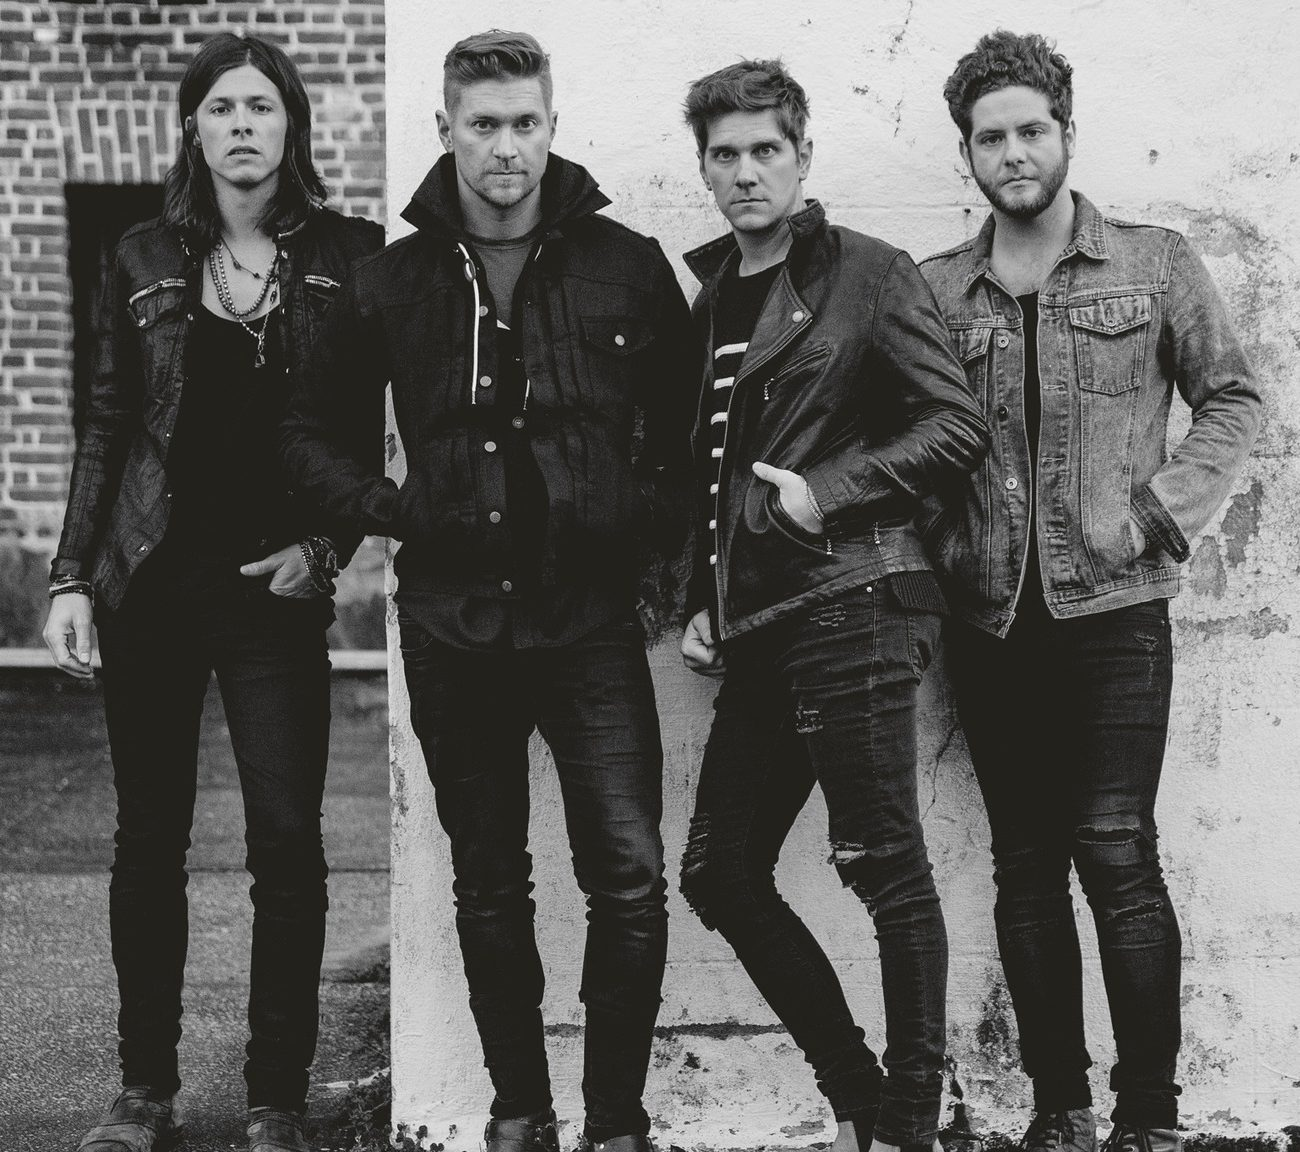 Needtobreathe Forever On Your Side Tour Wjohnnyswim Presented By